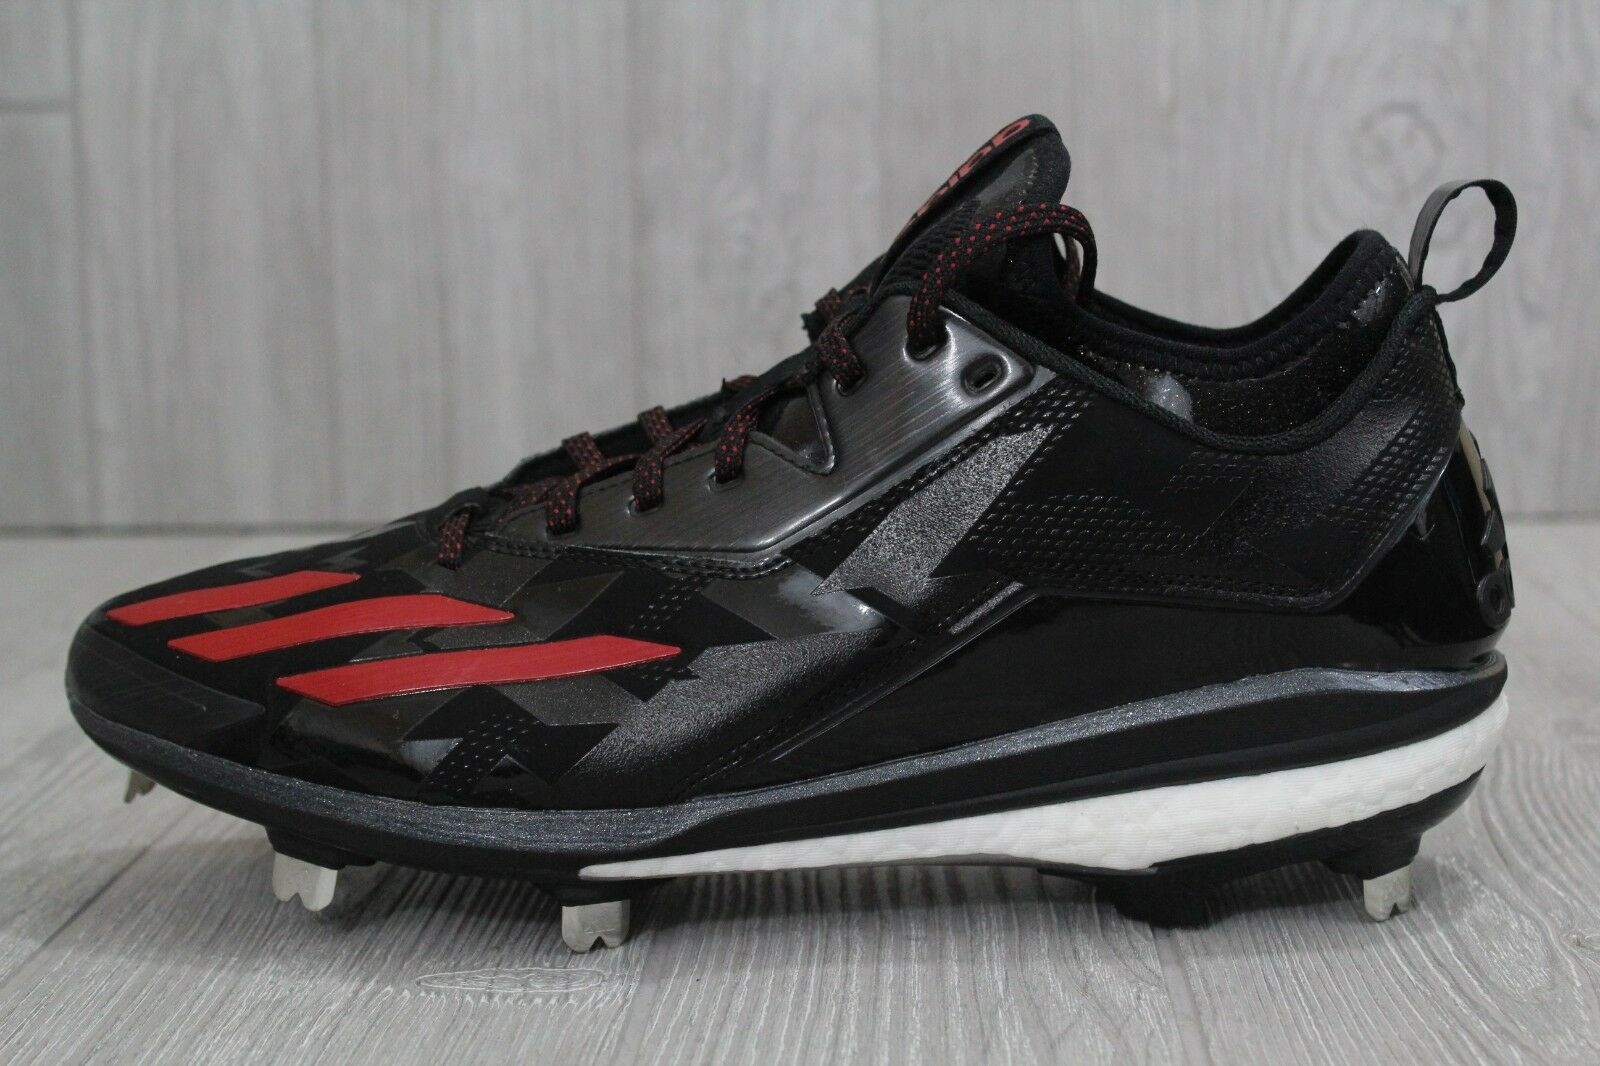 28 New Men's Adidas Q16526 Energy Boost Icon 2.0 Metal Baseball Cleats Size 10.5